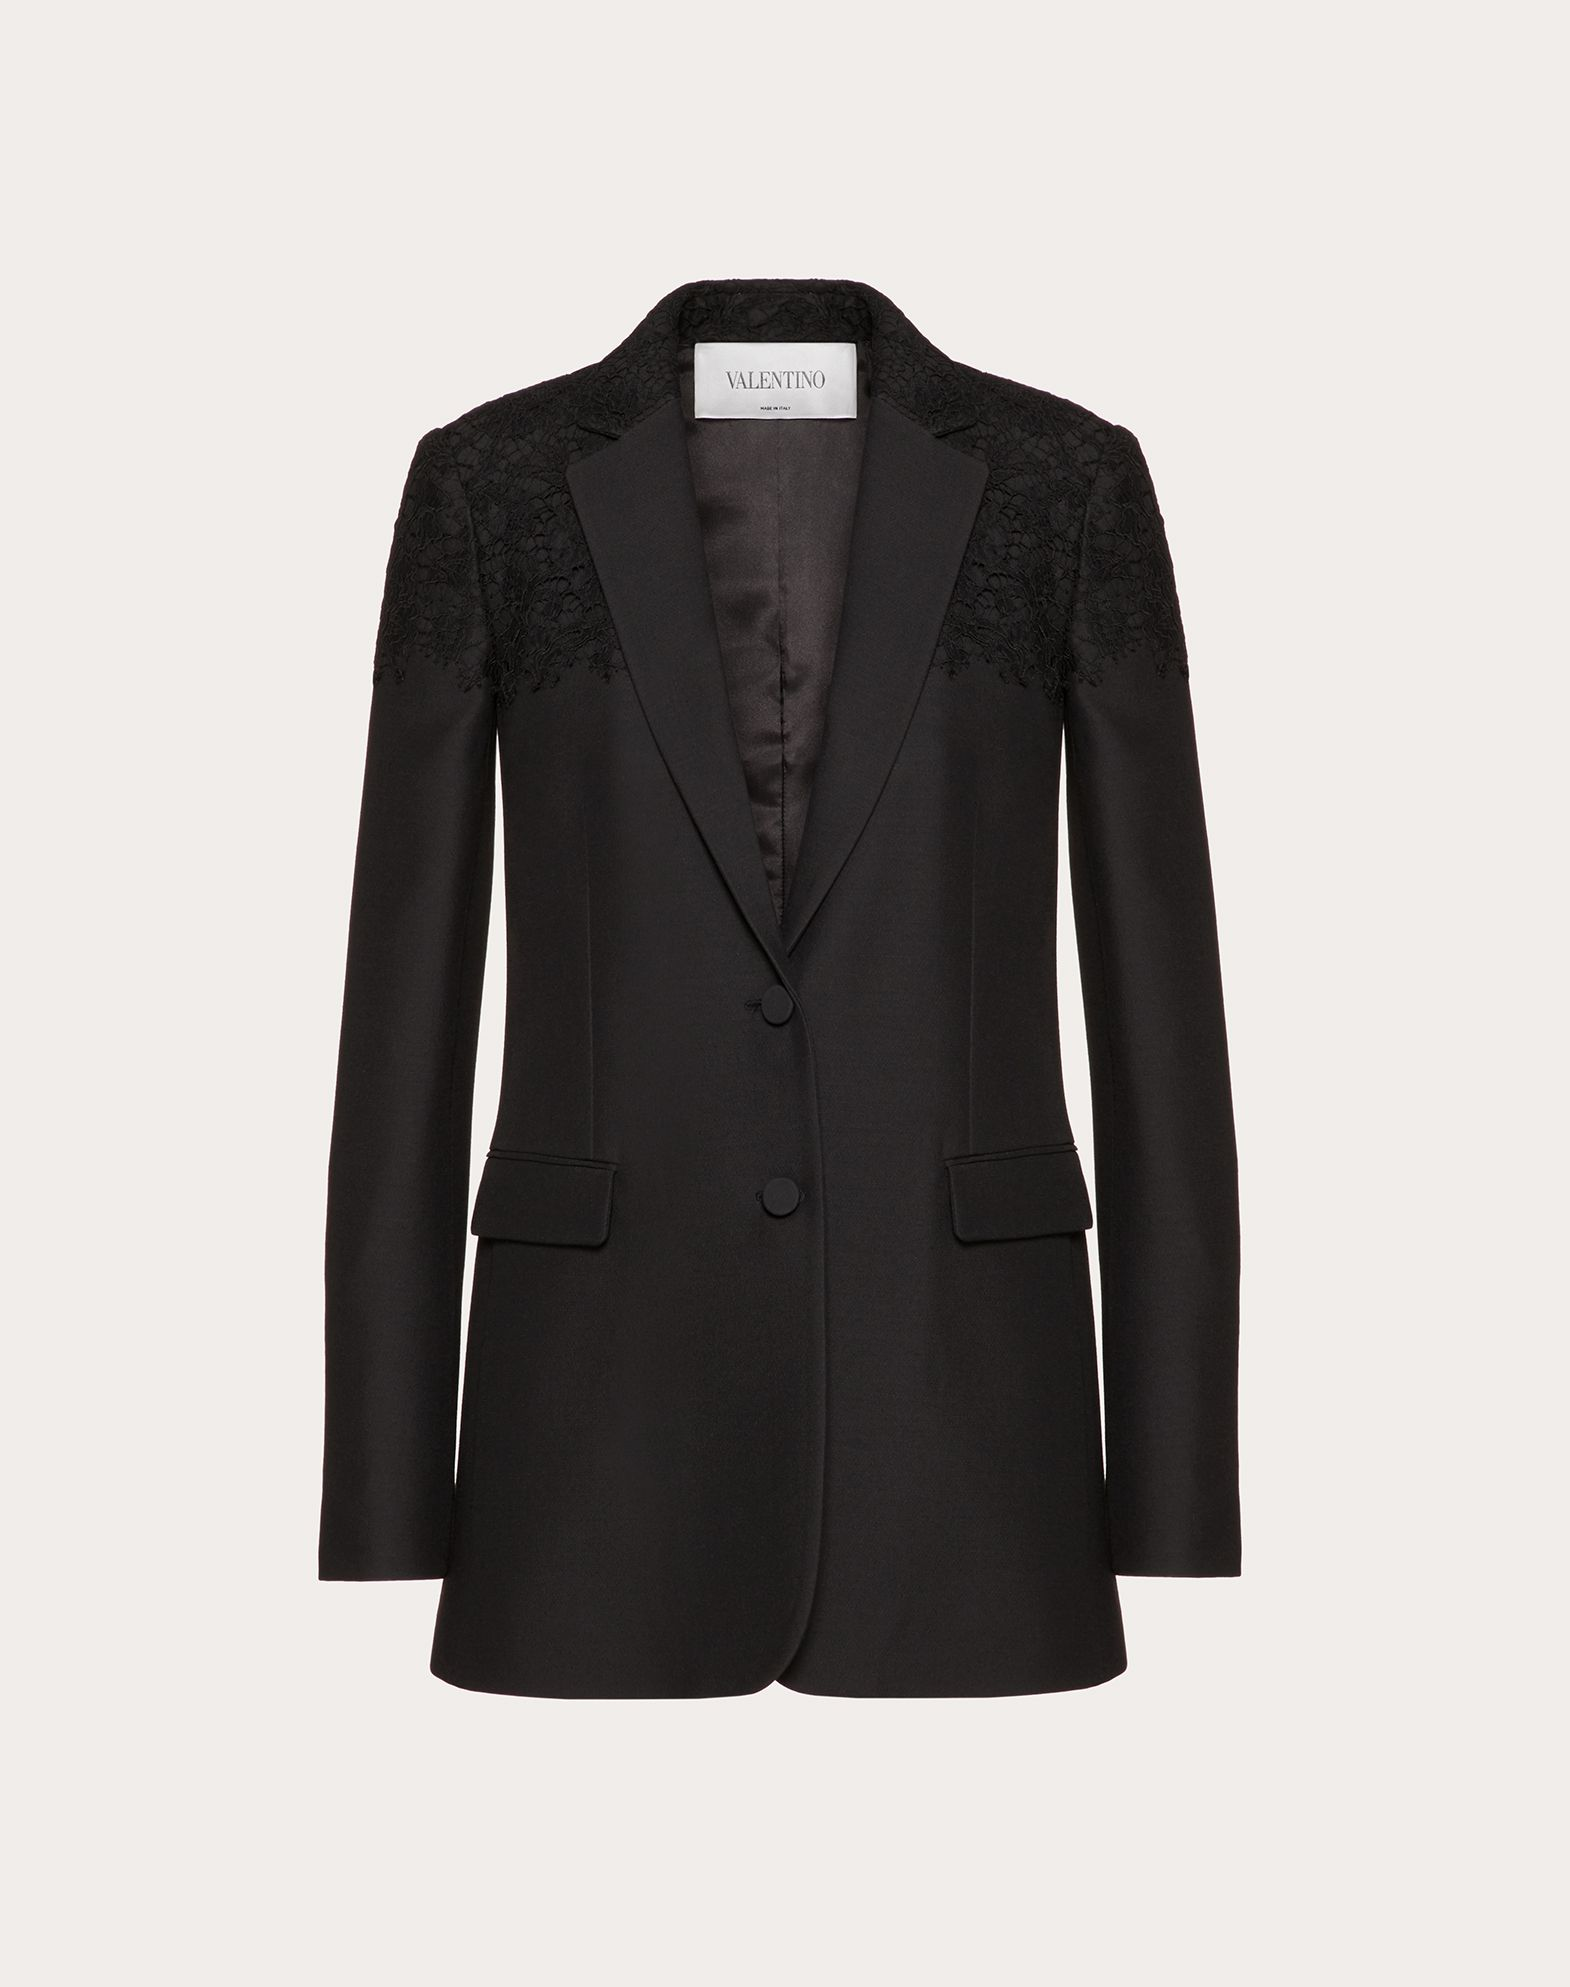 Crepe Couture and Heavy Lace Jacket